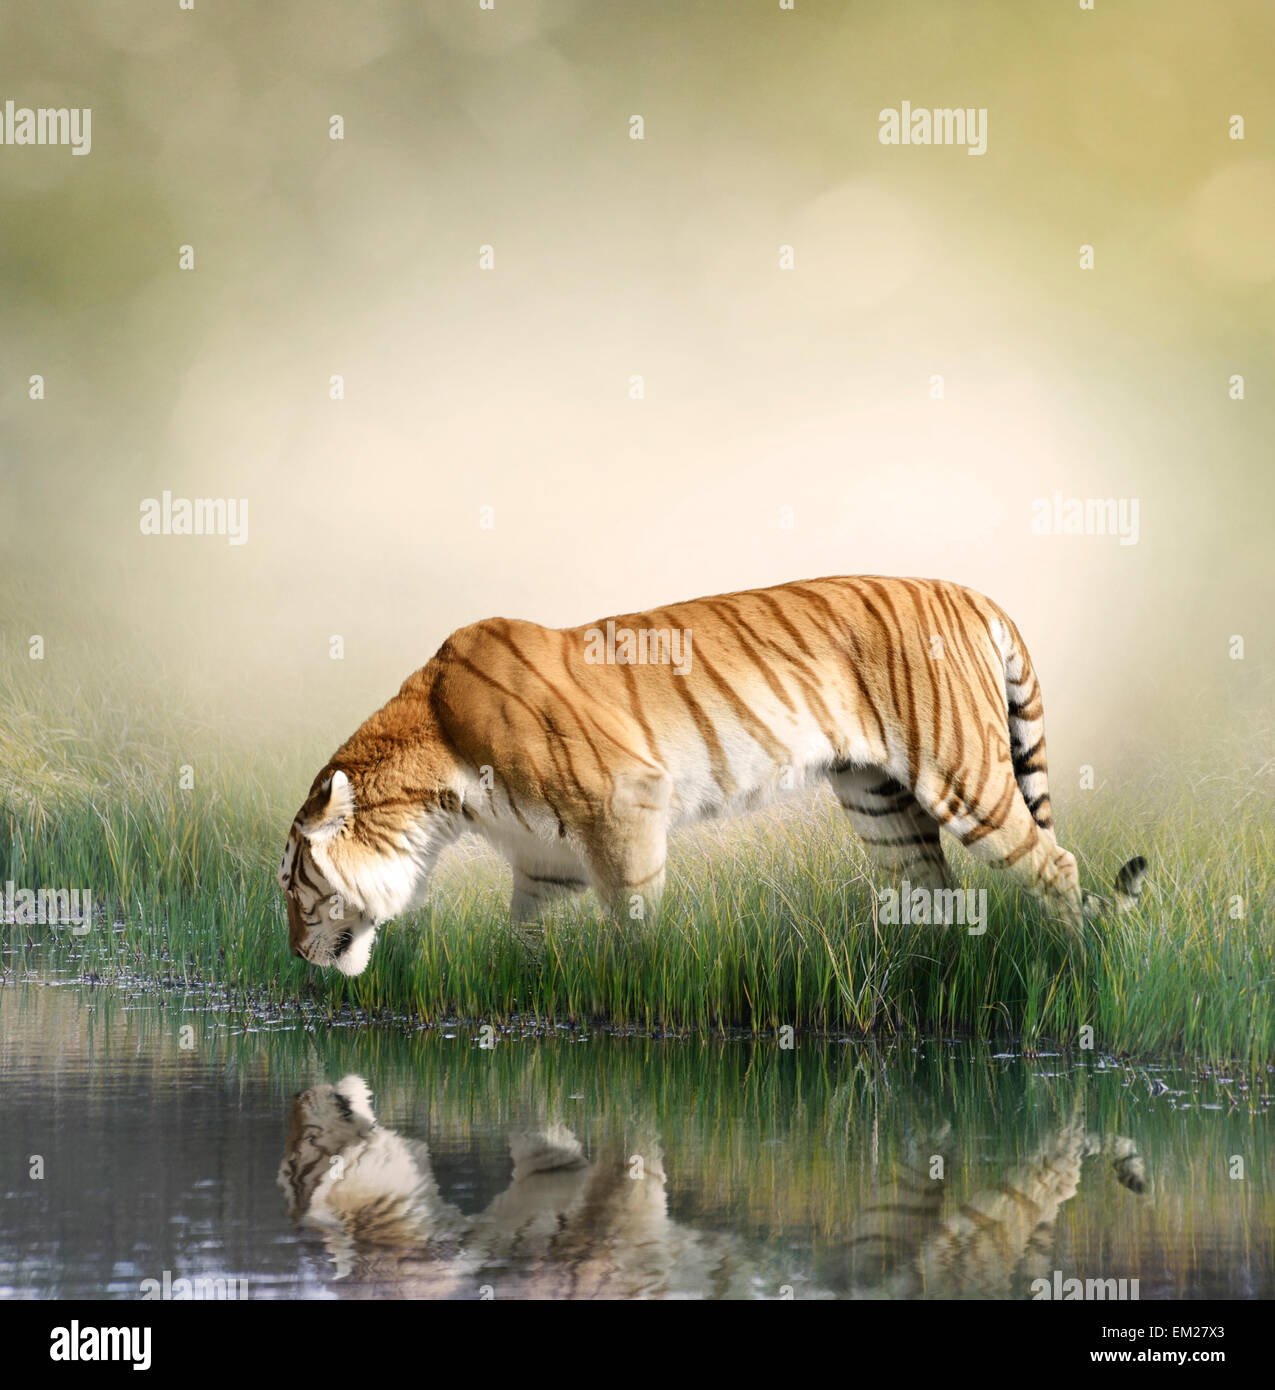 Tiger On Grassy Bank With Reflection - Stock Image